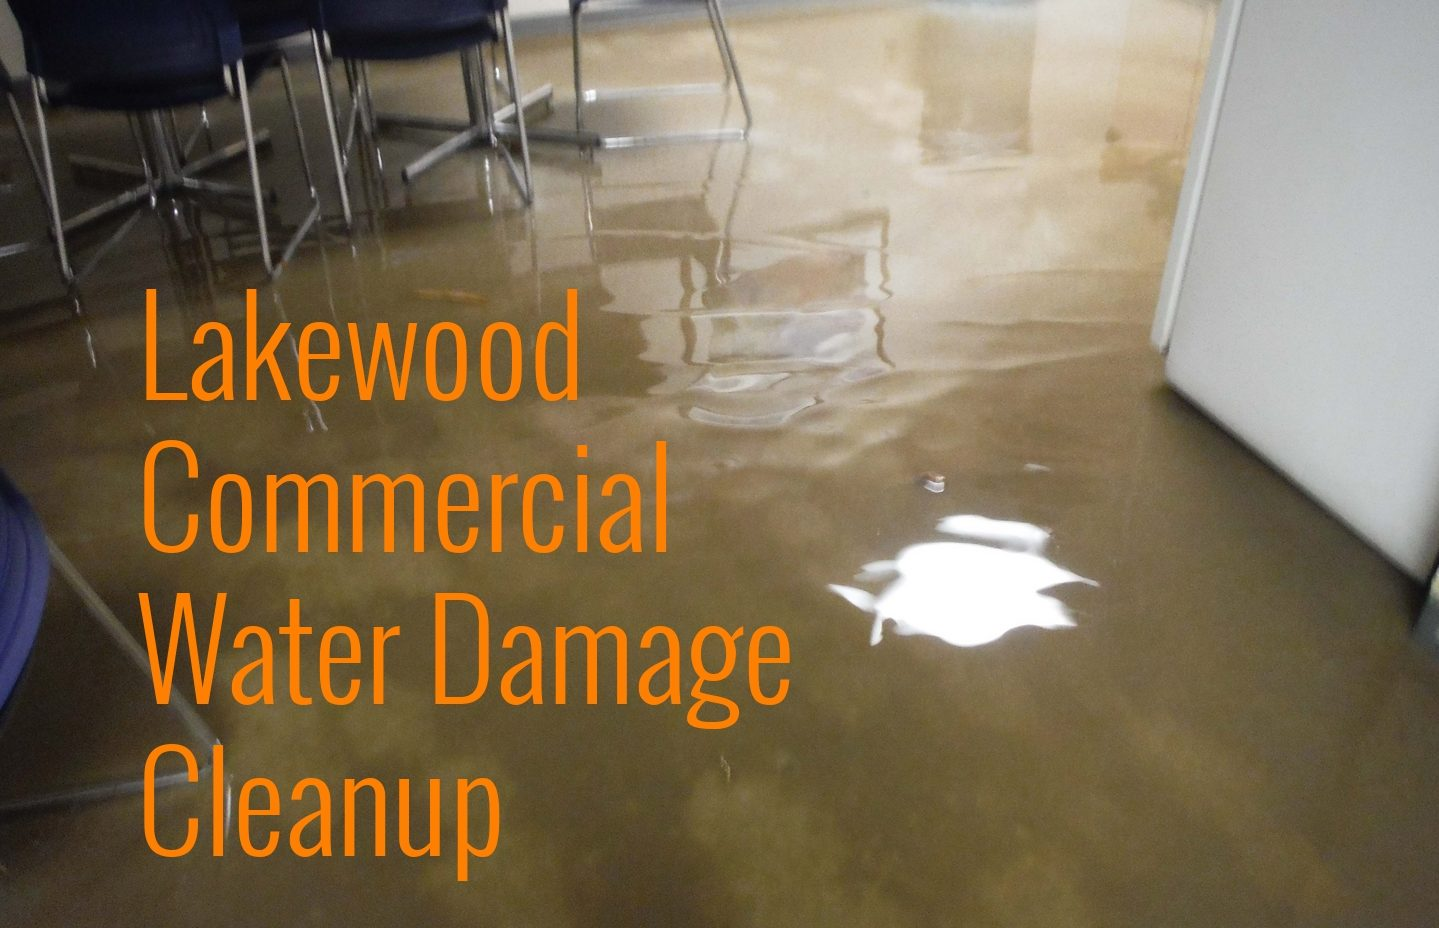 Lakewood Commercial Water Damage Cleanup